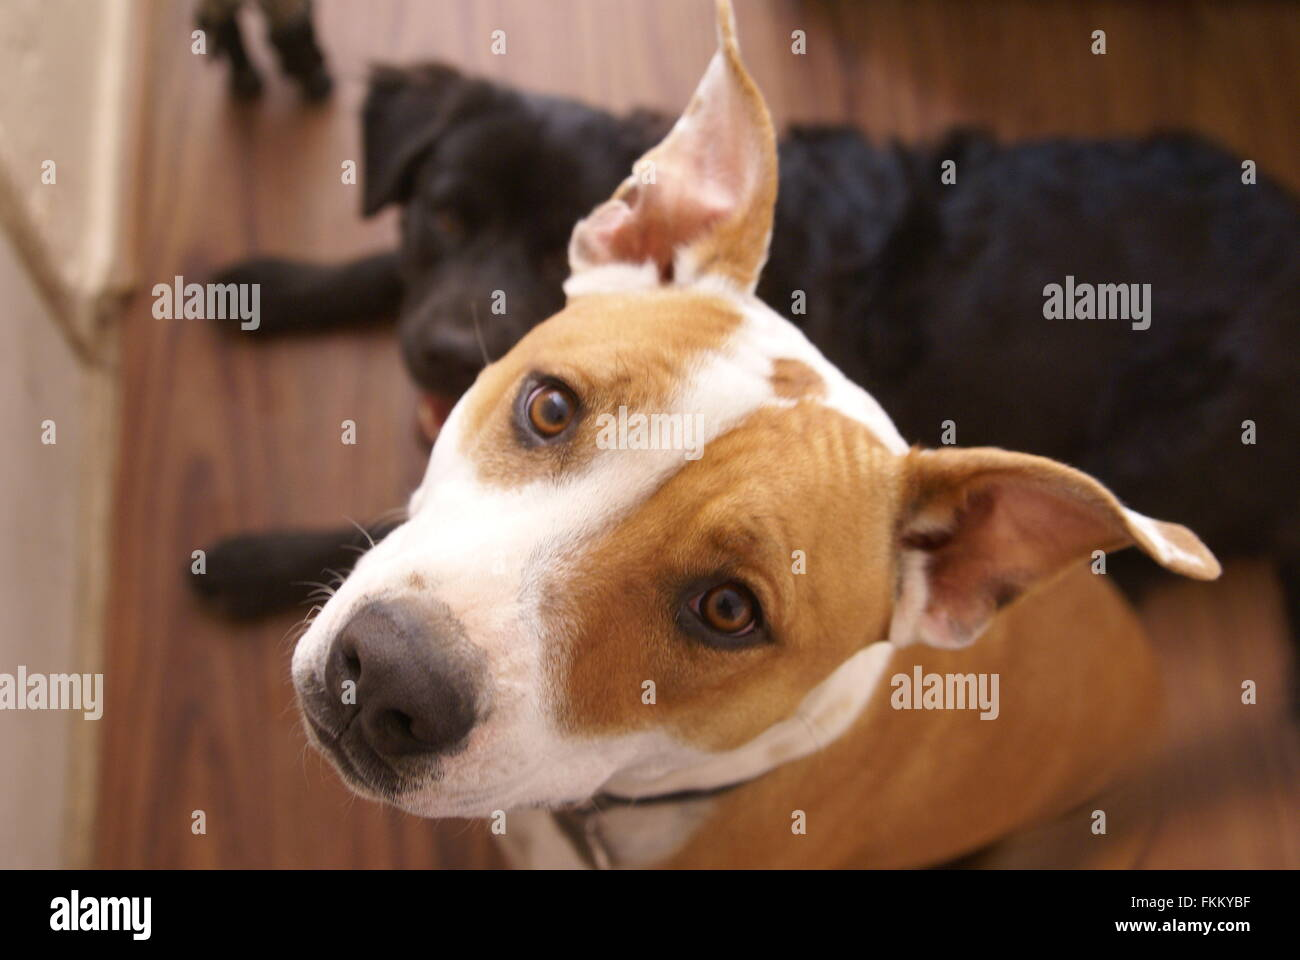 Young American Pit Bull Terrier mix dog looks inquisitively at camera, with a smaller black dog in the background. - Stock Image